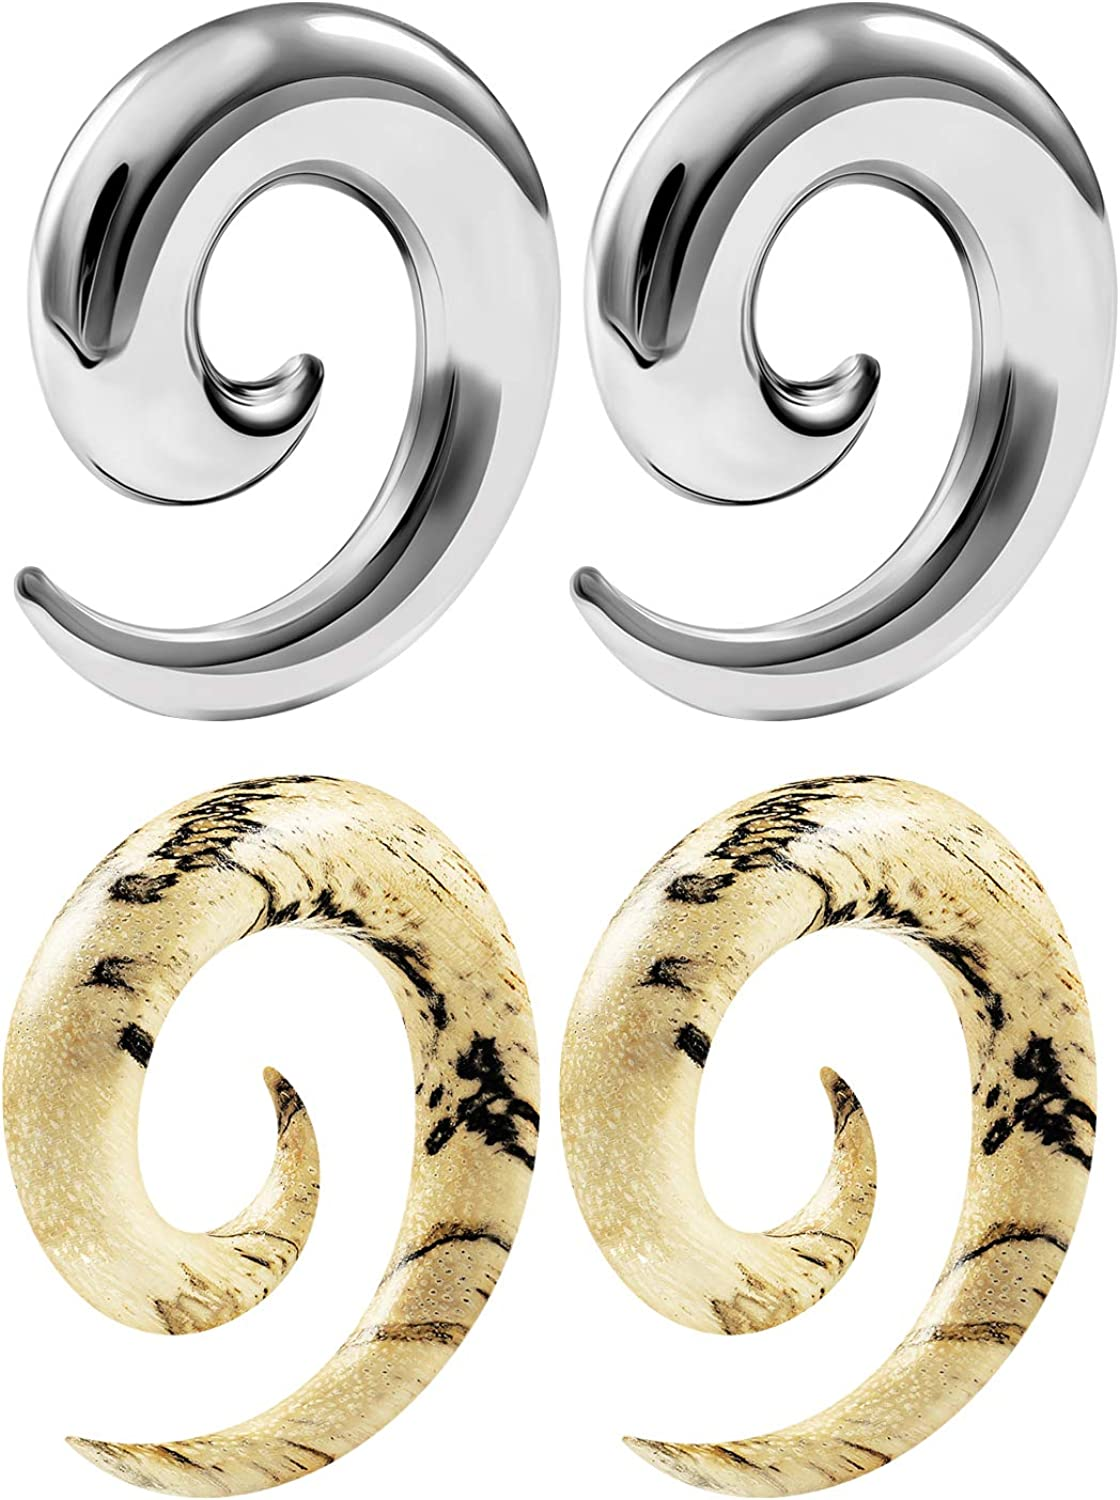 """PAIR-Tapers Spiral Wood Look Acrylic 12mm//1//2/"""" Gauge Body Jewelry"""